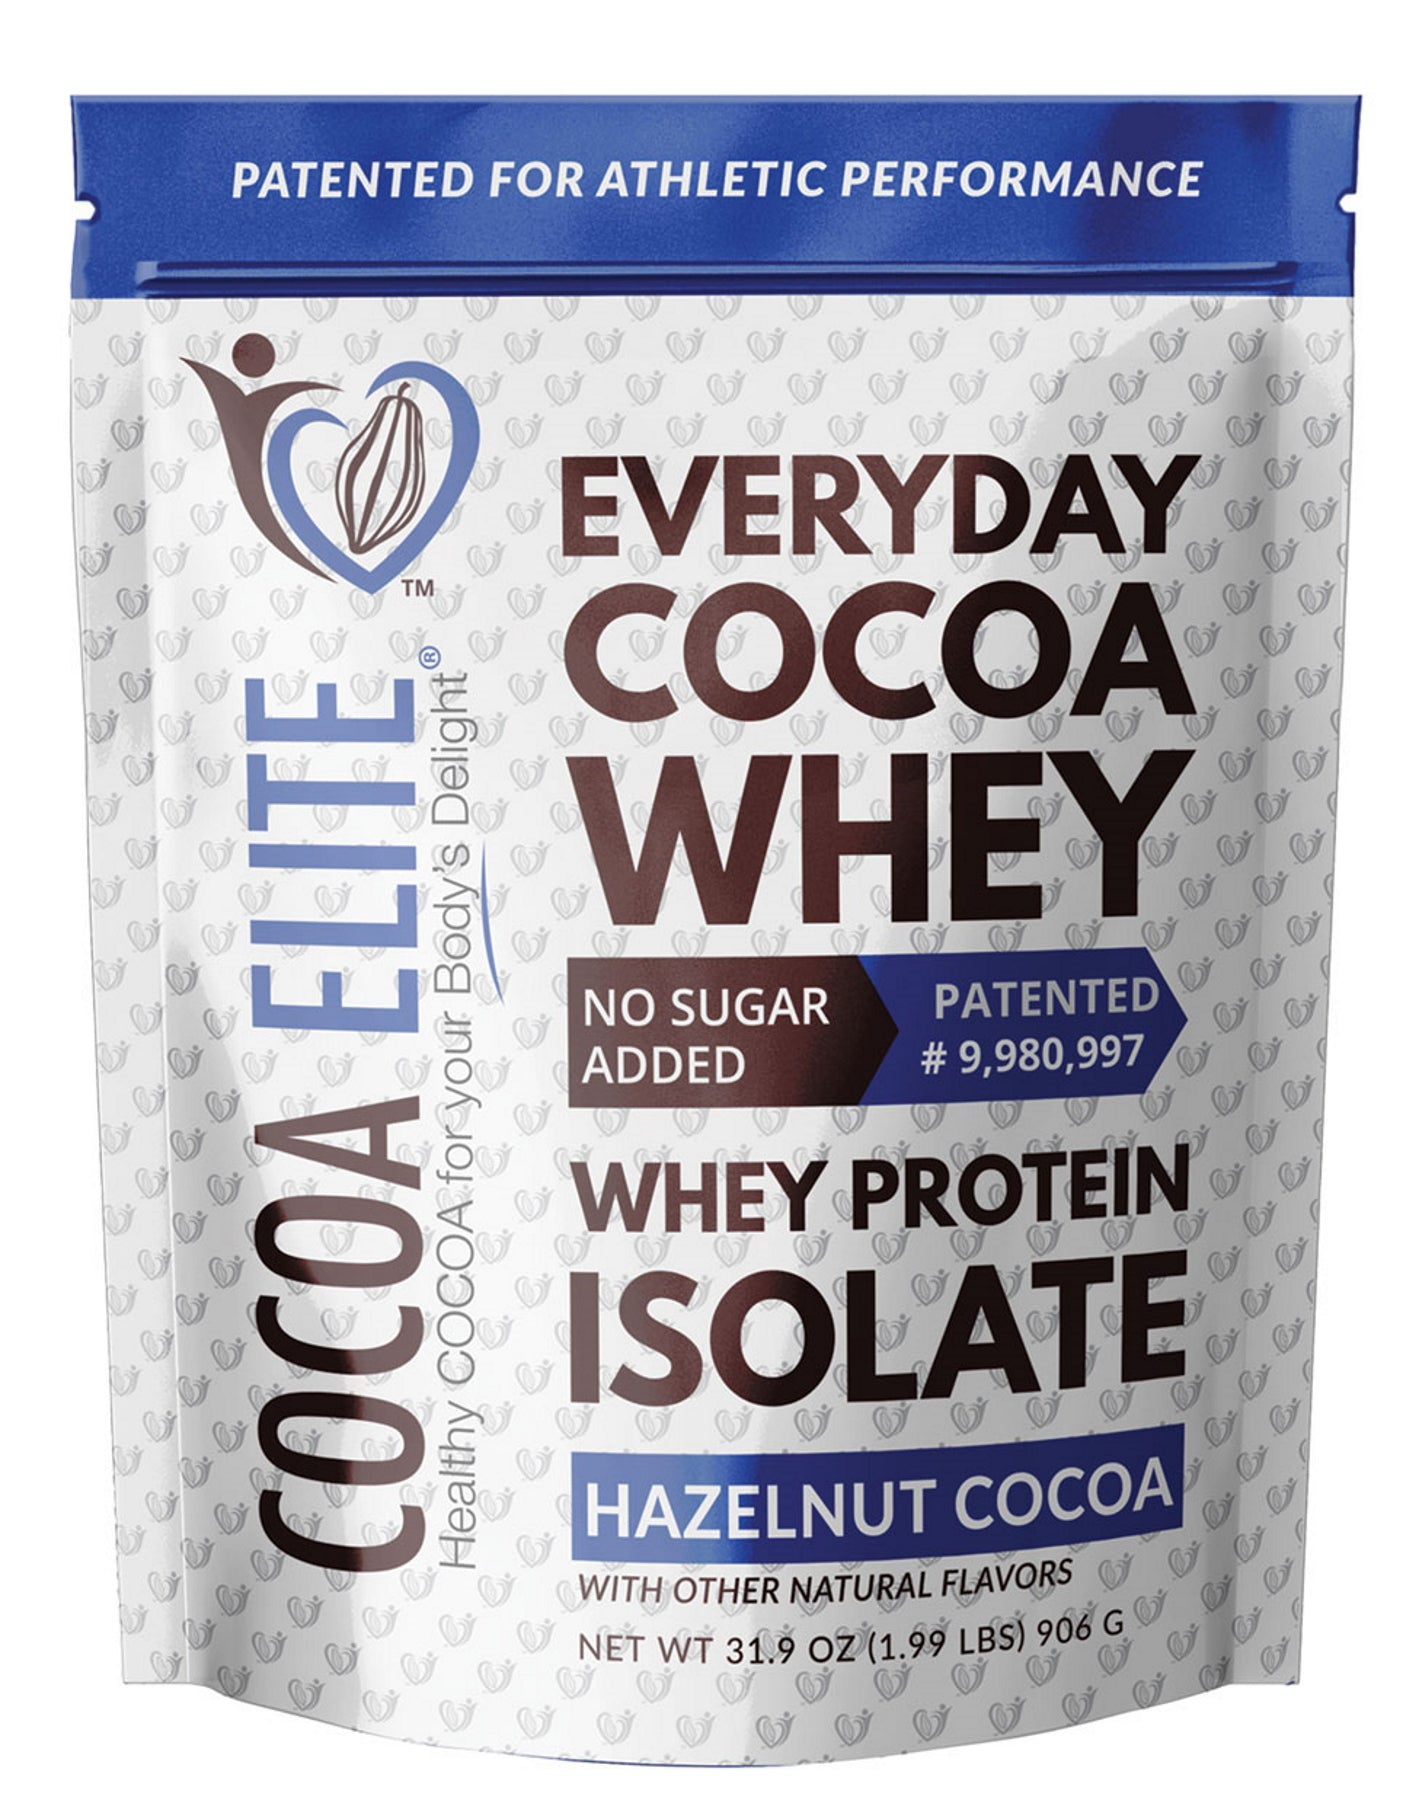 Everyday Cocoa Whey - Hazelnut Cocoa